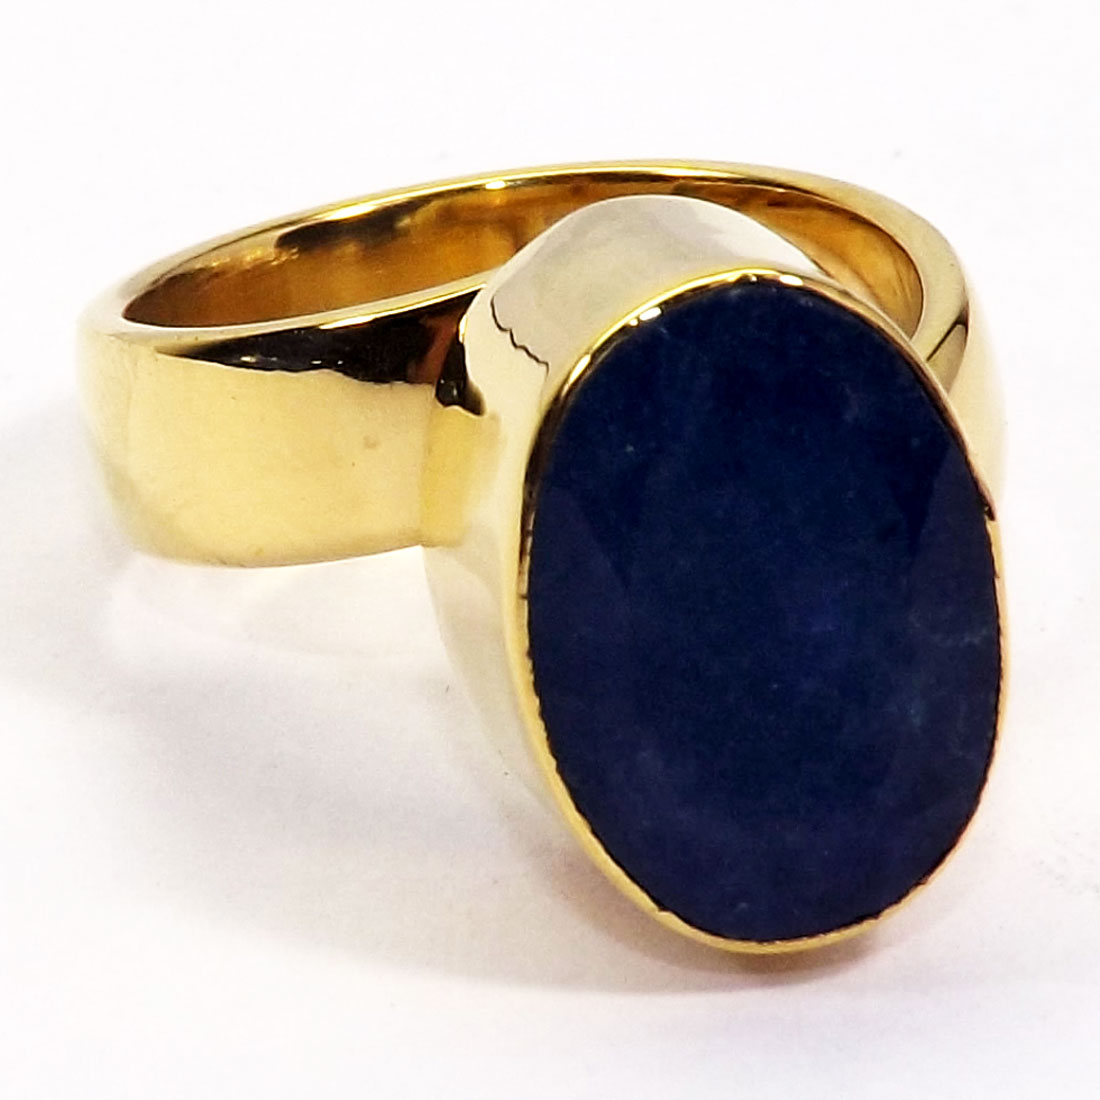 gemstone p rings cut cab sapphire corundum made blue a in plain brass